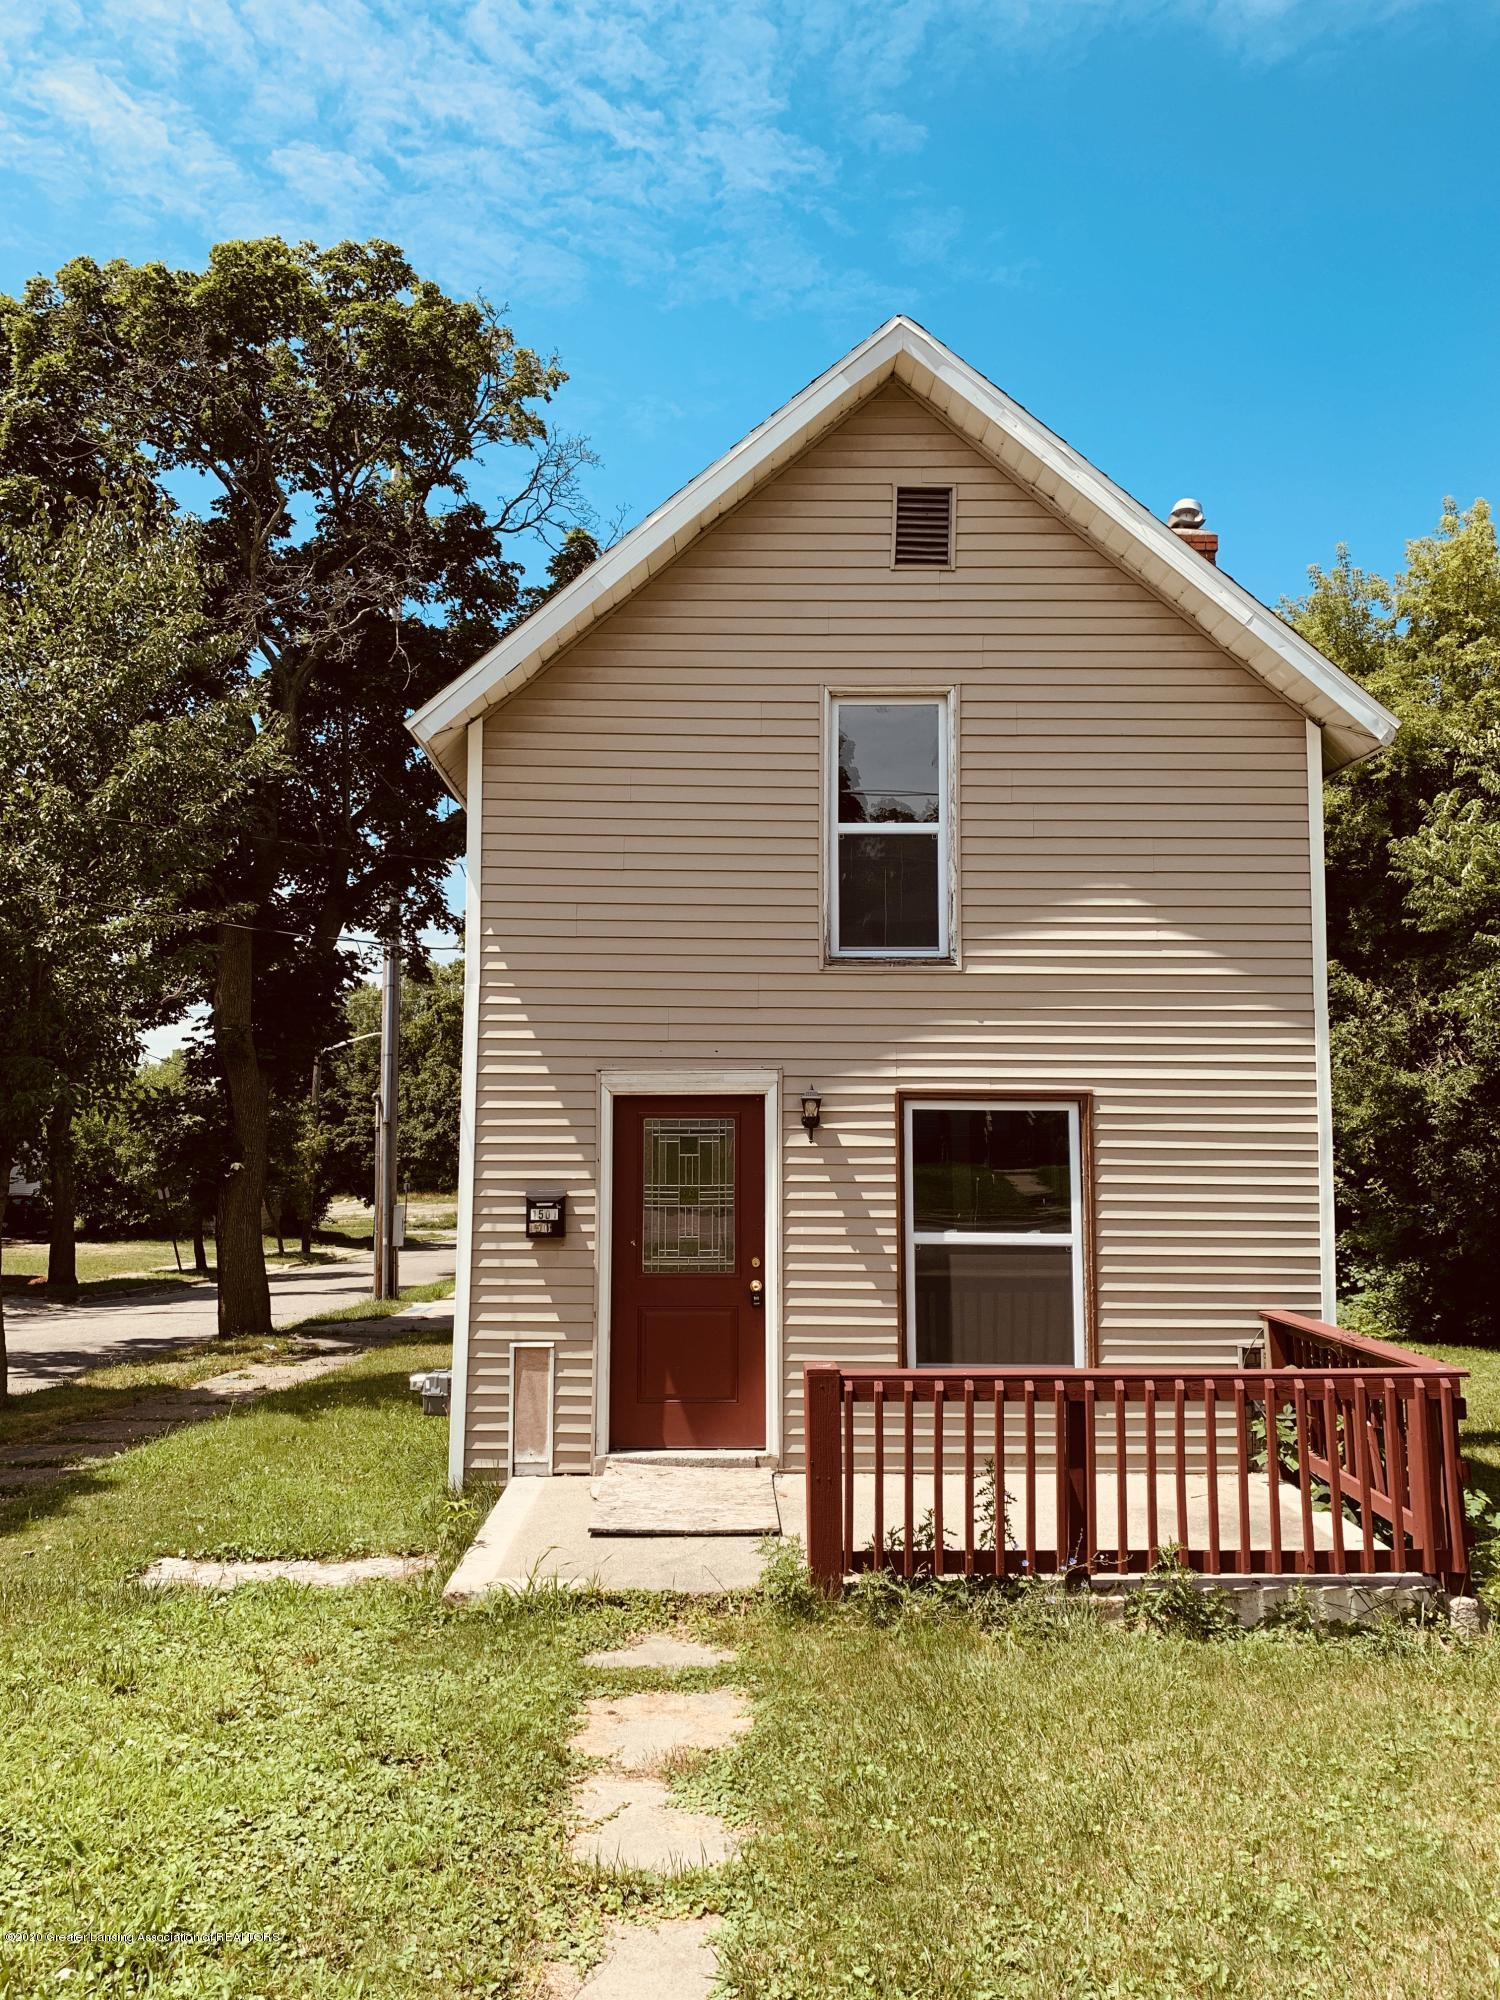 1501 N High St - house - 1